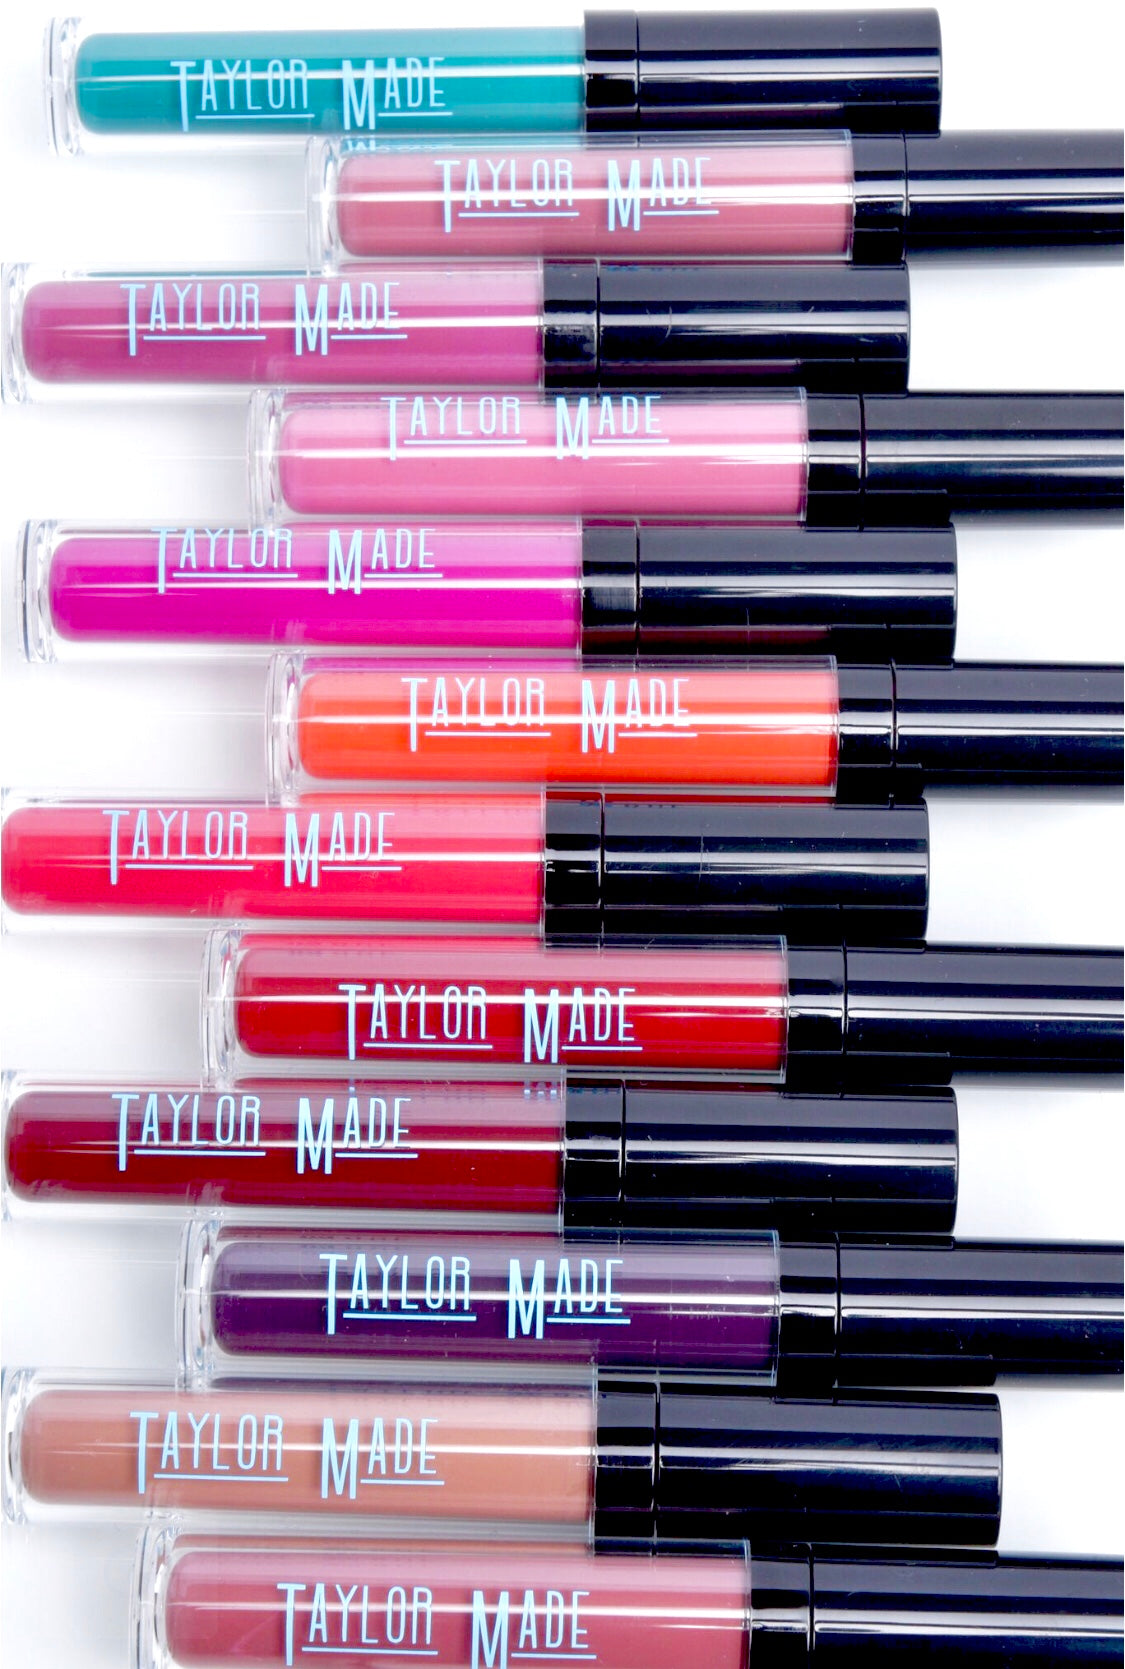 Taylormade cosmetics and Doctor April Spencer presents Liquid matte Taylor Made Cosmetics with lipsticks and lip lacquers that have powerful pigments that are Phalate and Paraben-free by Dr April Spencer